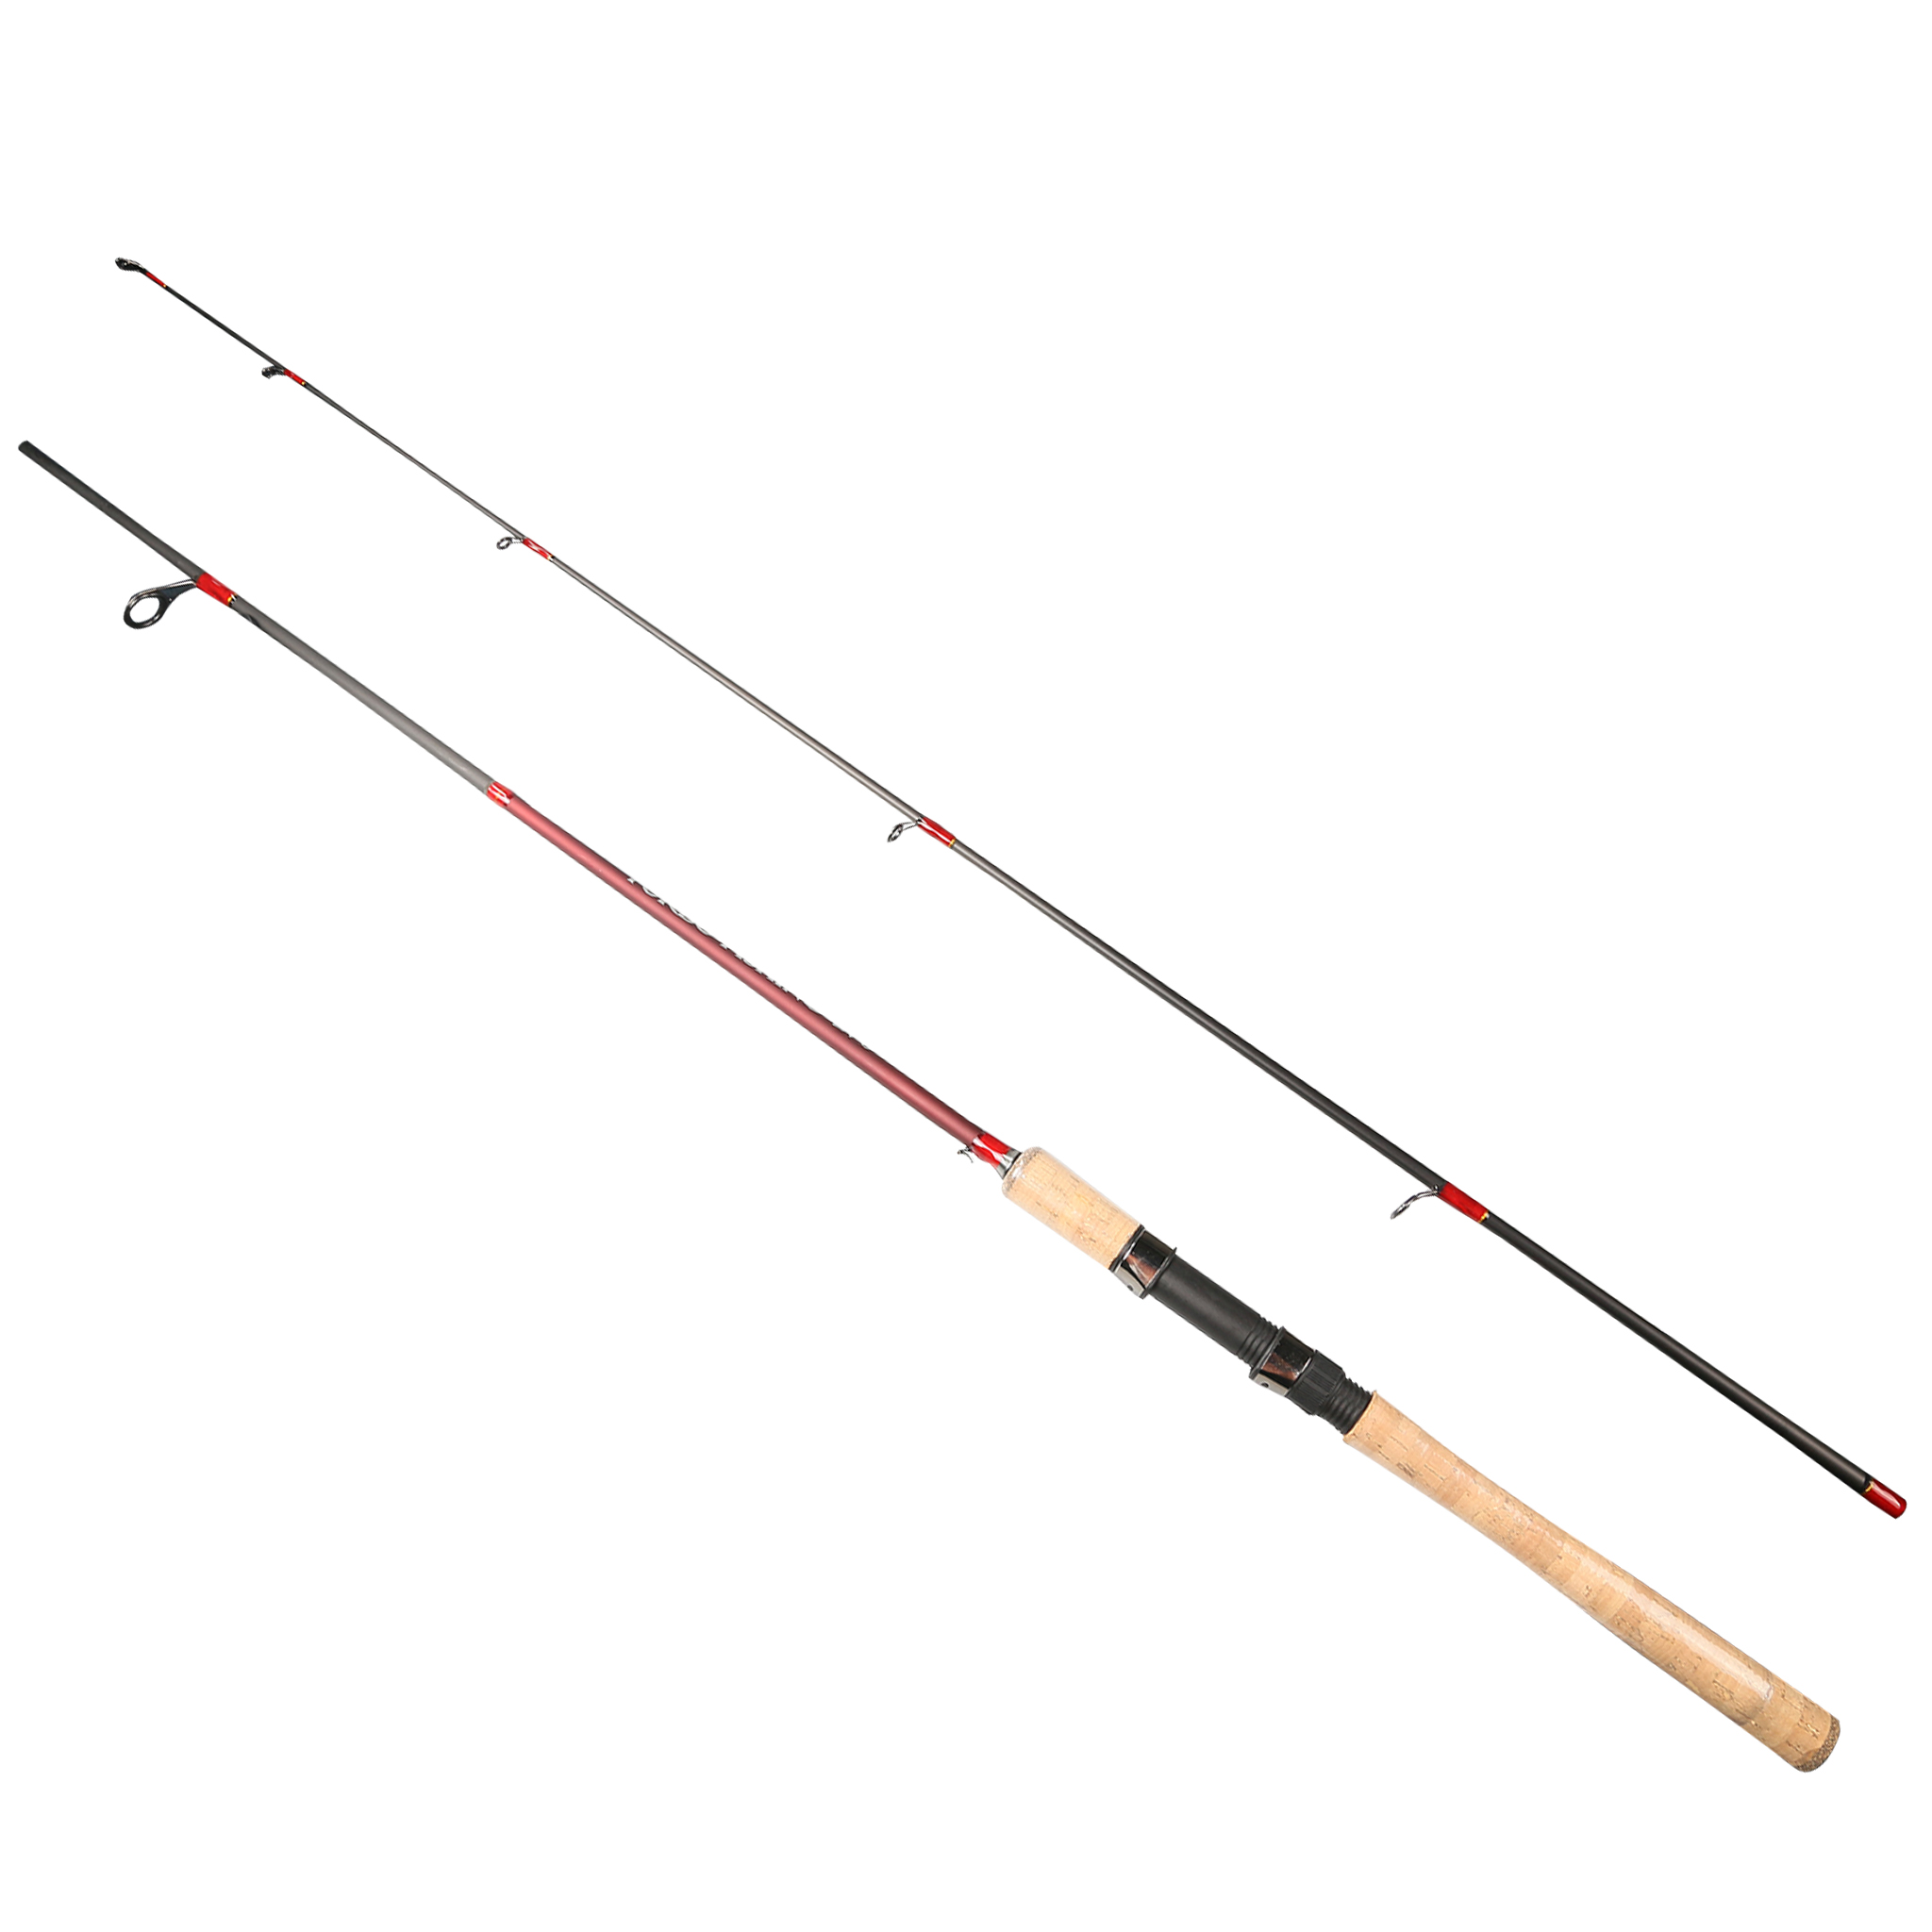 2.1-2.7m 2 Section Red Fishing Rod Spinning Lures Rod 15-45g Lure Weight 12-25 Line Weight MH 95% Carbon Fiber Pole for Weever